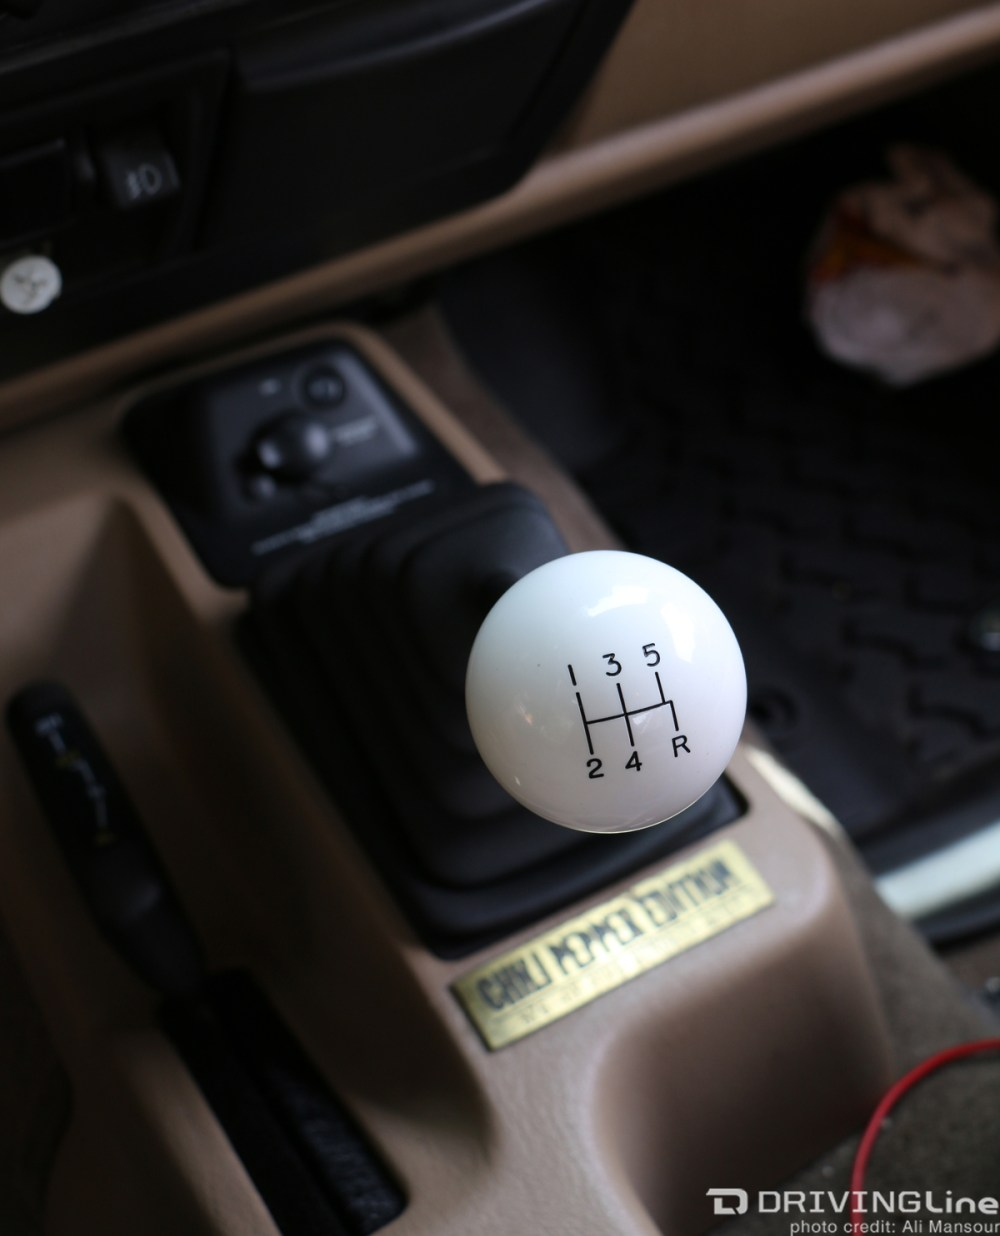 medium resolution of opting for a manual over an automatic transmission often comes down to what you are comfortable driving